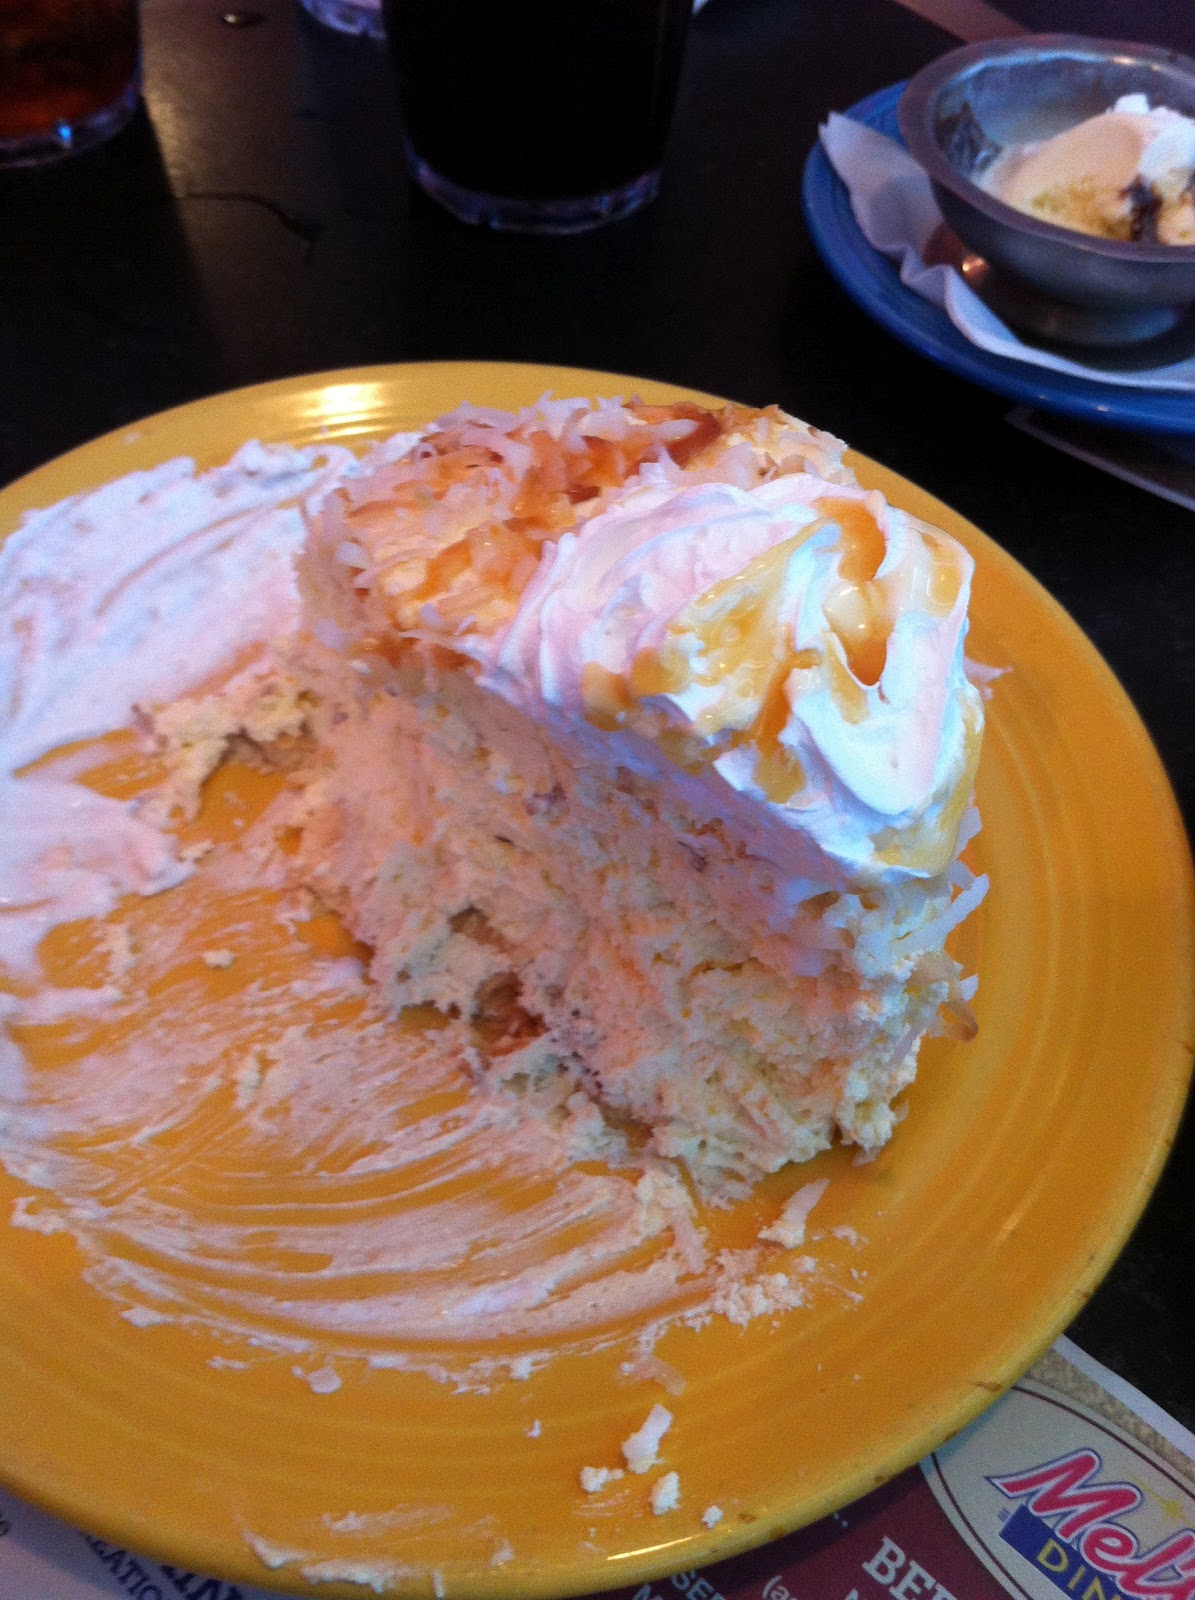 I'll be having dreams of this most wonderful mile high coconut cream pie.